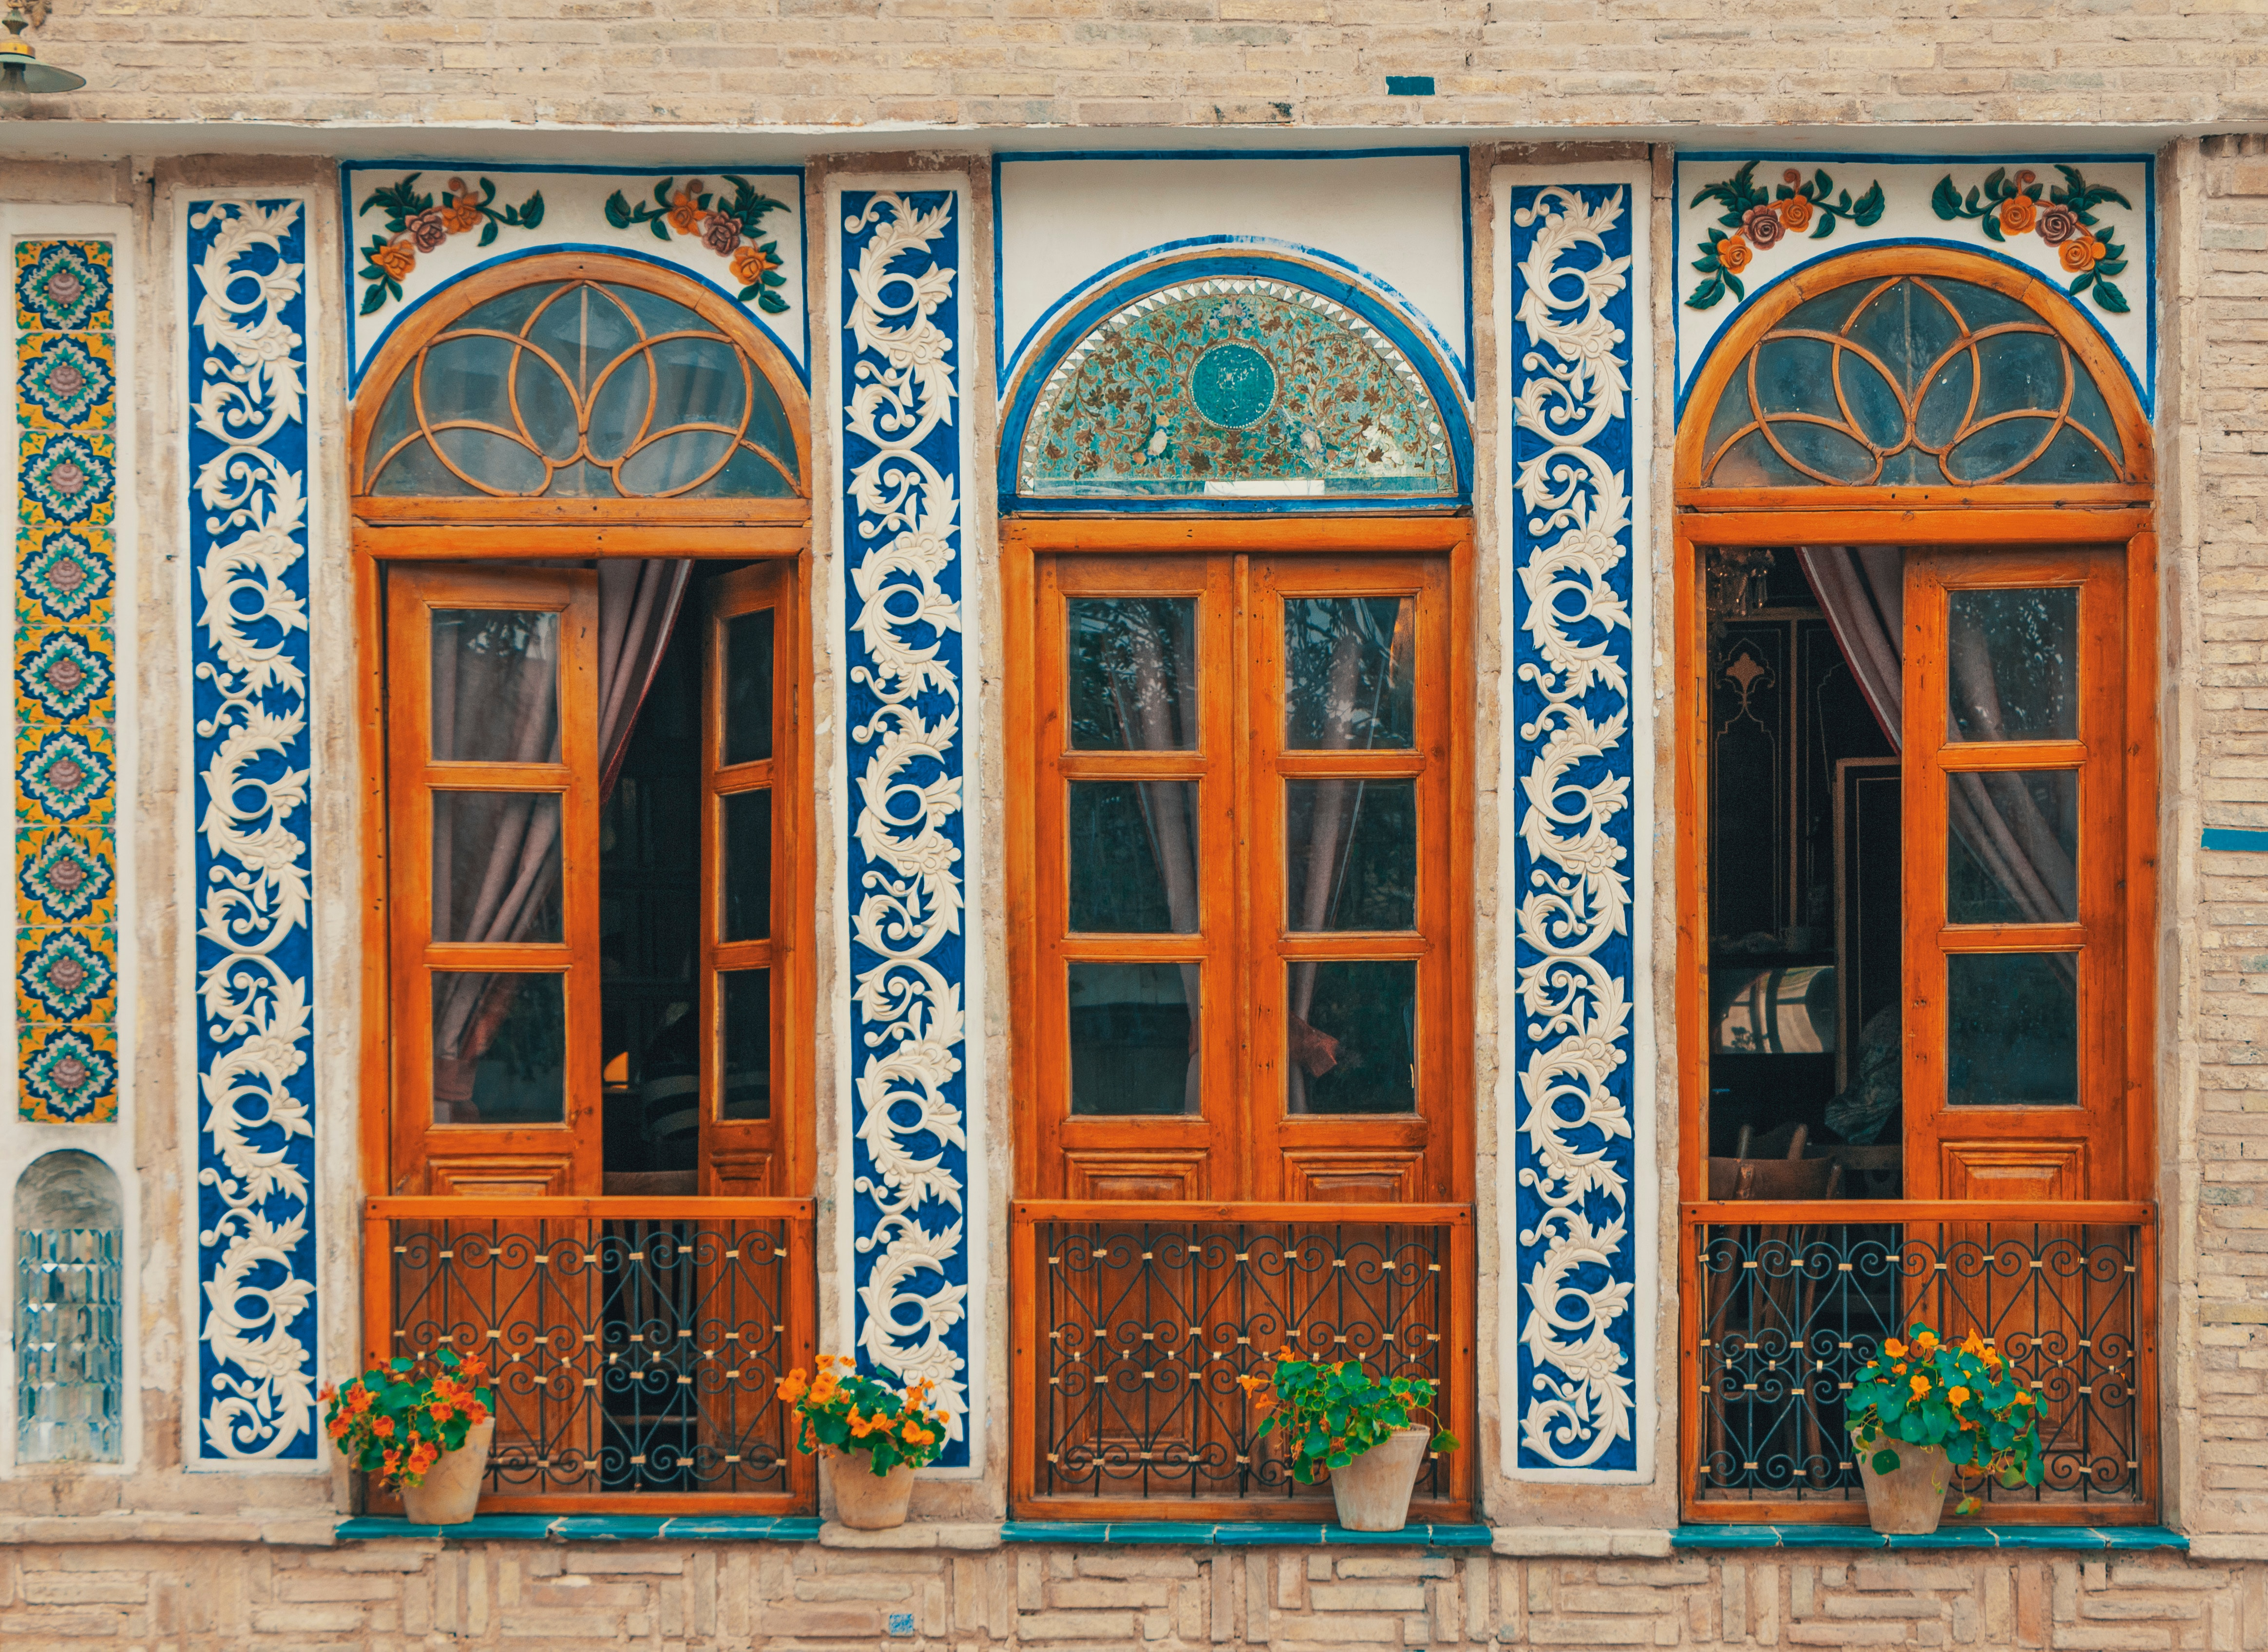 mosaic-covered doors in iran